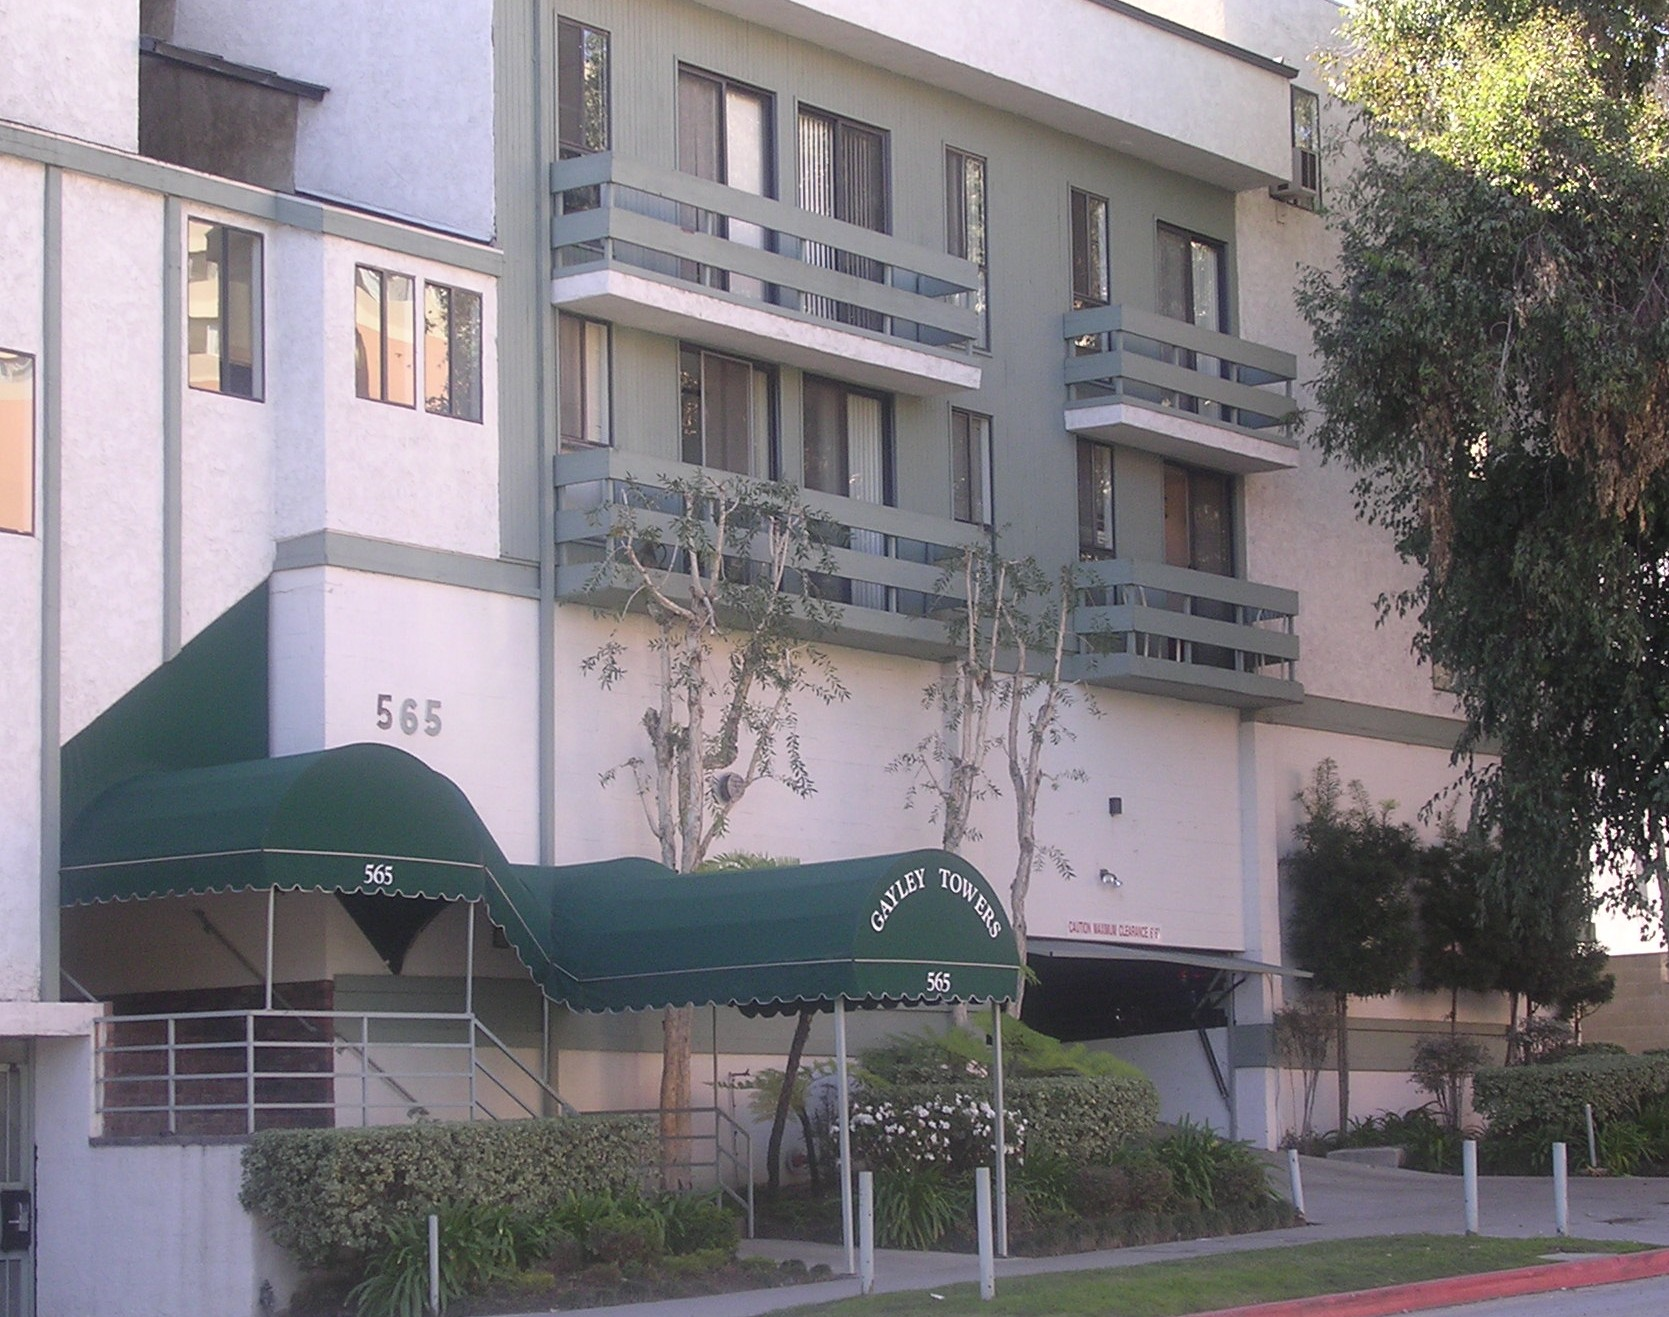 UCLA Campus Map: Gayley Towers Apartments; Gayley Towers ... | 1669 x 1317 jpeg 509kB